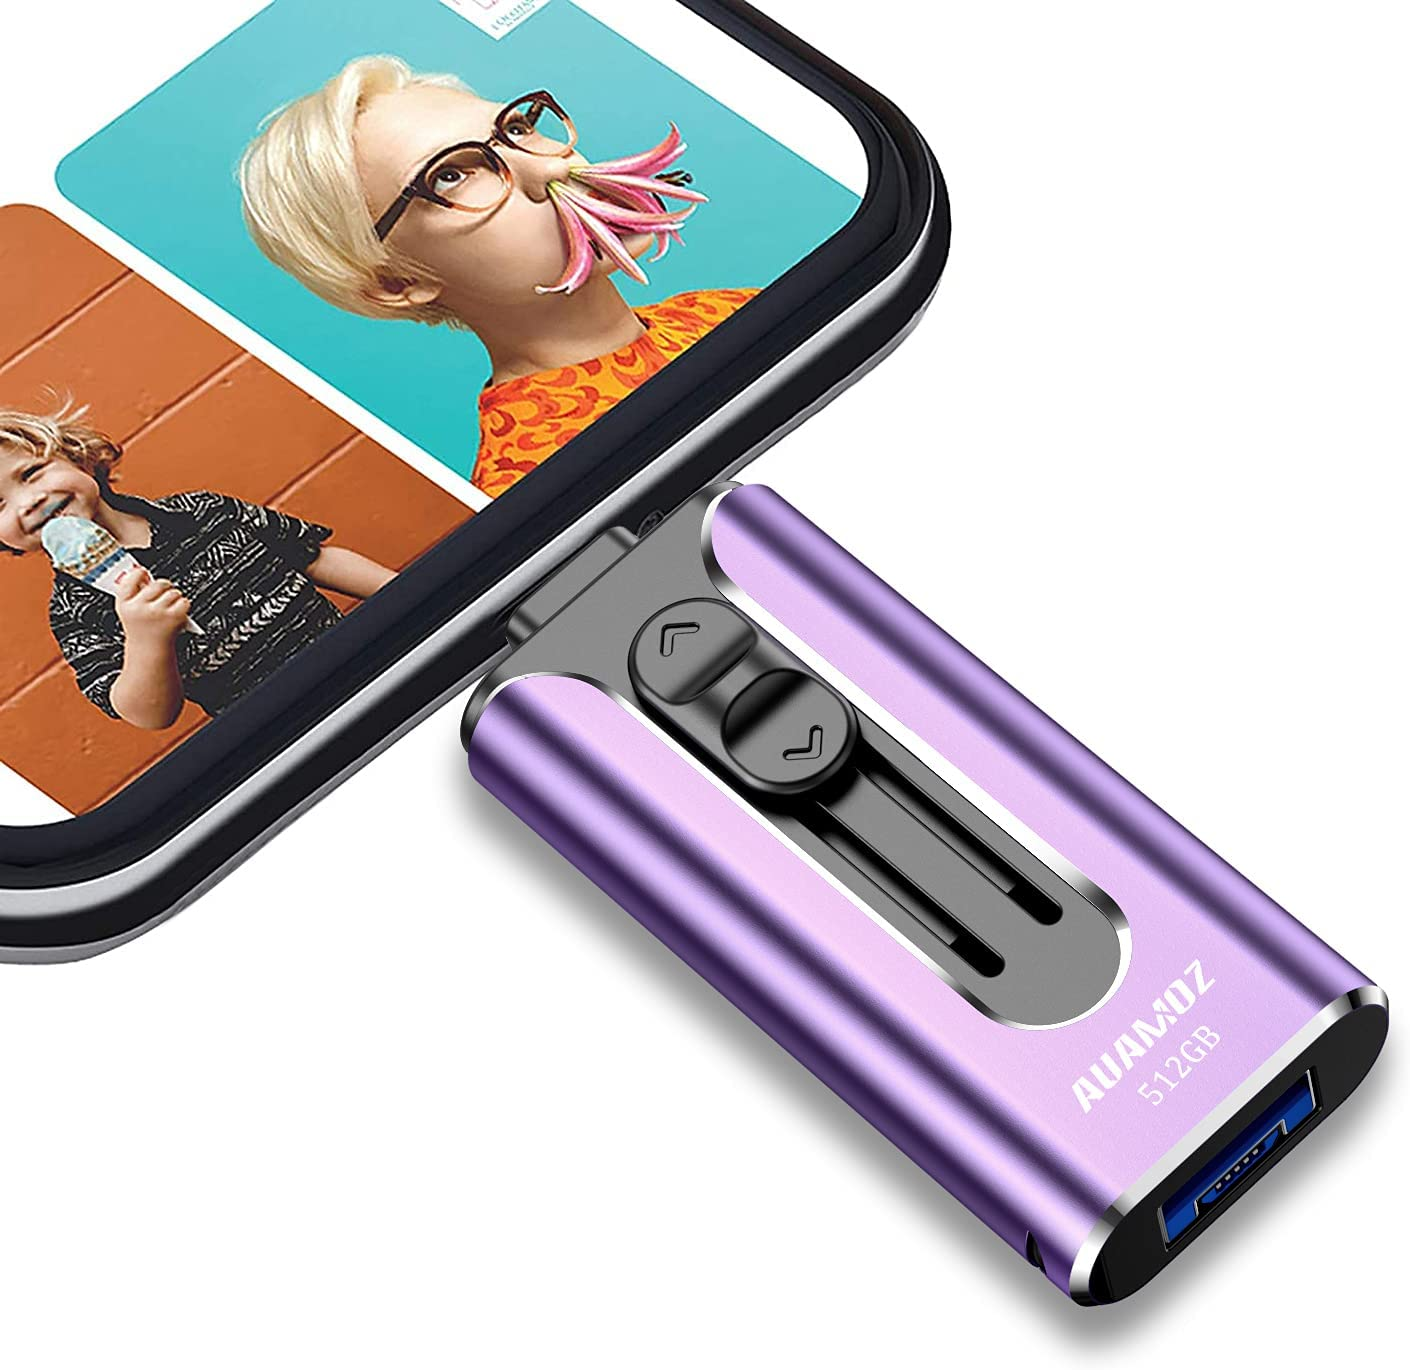 USB 3.0 Flash Drives 512GB, AUAMOZ USB Stick Memory Drive Photo Stick 512GB Compatible with Phone/Android/Computer for Storage and Backup (Purple)